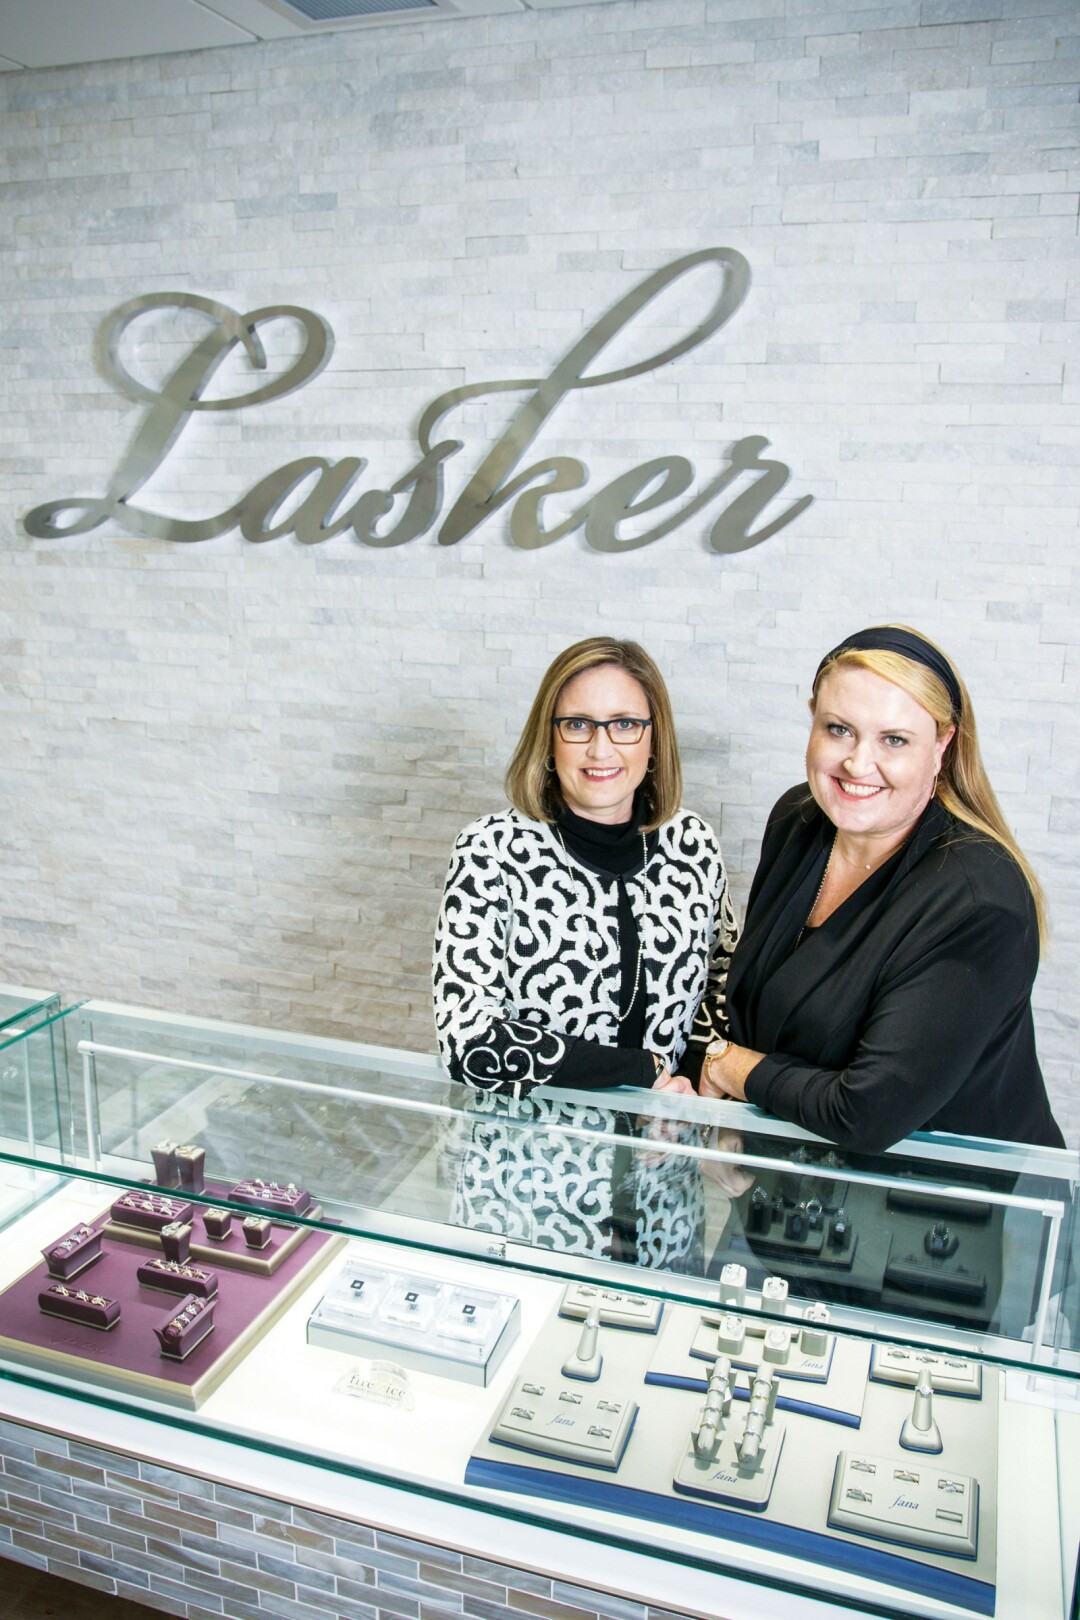 SPARKLING MEMORIES. Sisters Liz and Nicole Lasker head up Lasker Jewelers, selling some of the finest jewelry in the Valley, and giving back to the community.